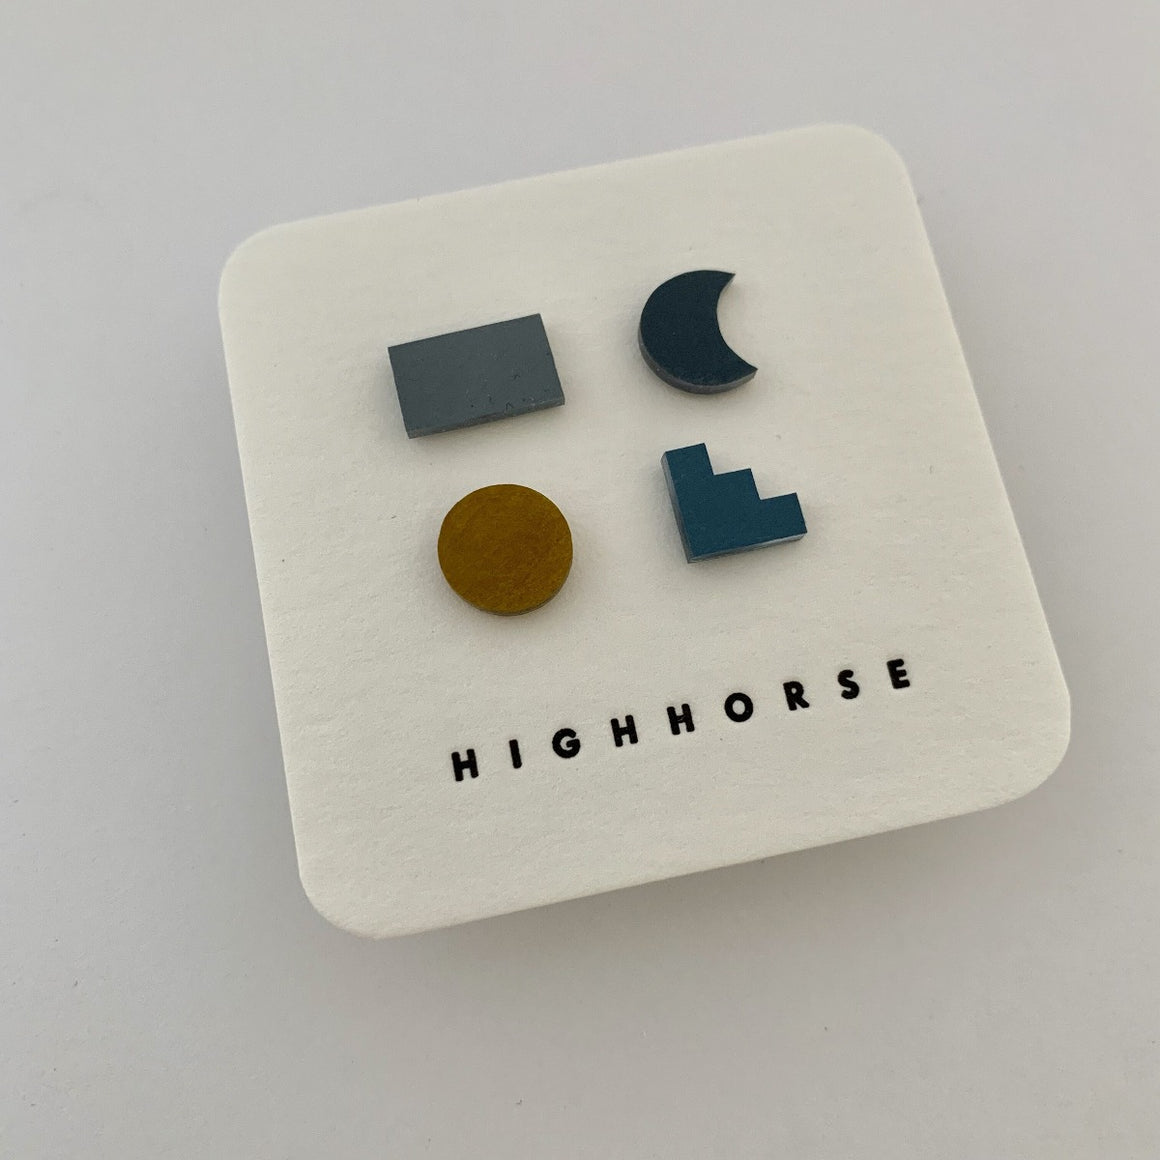 Earring stud set featuring a variety of shapes including colours grey, navy, mustard and light blue